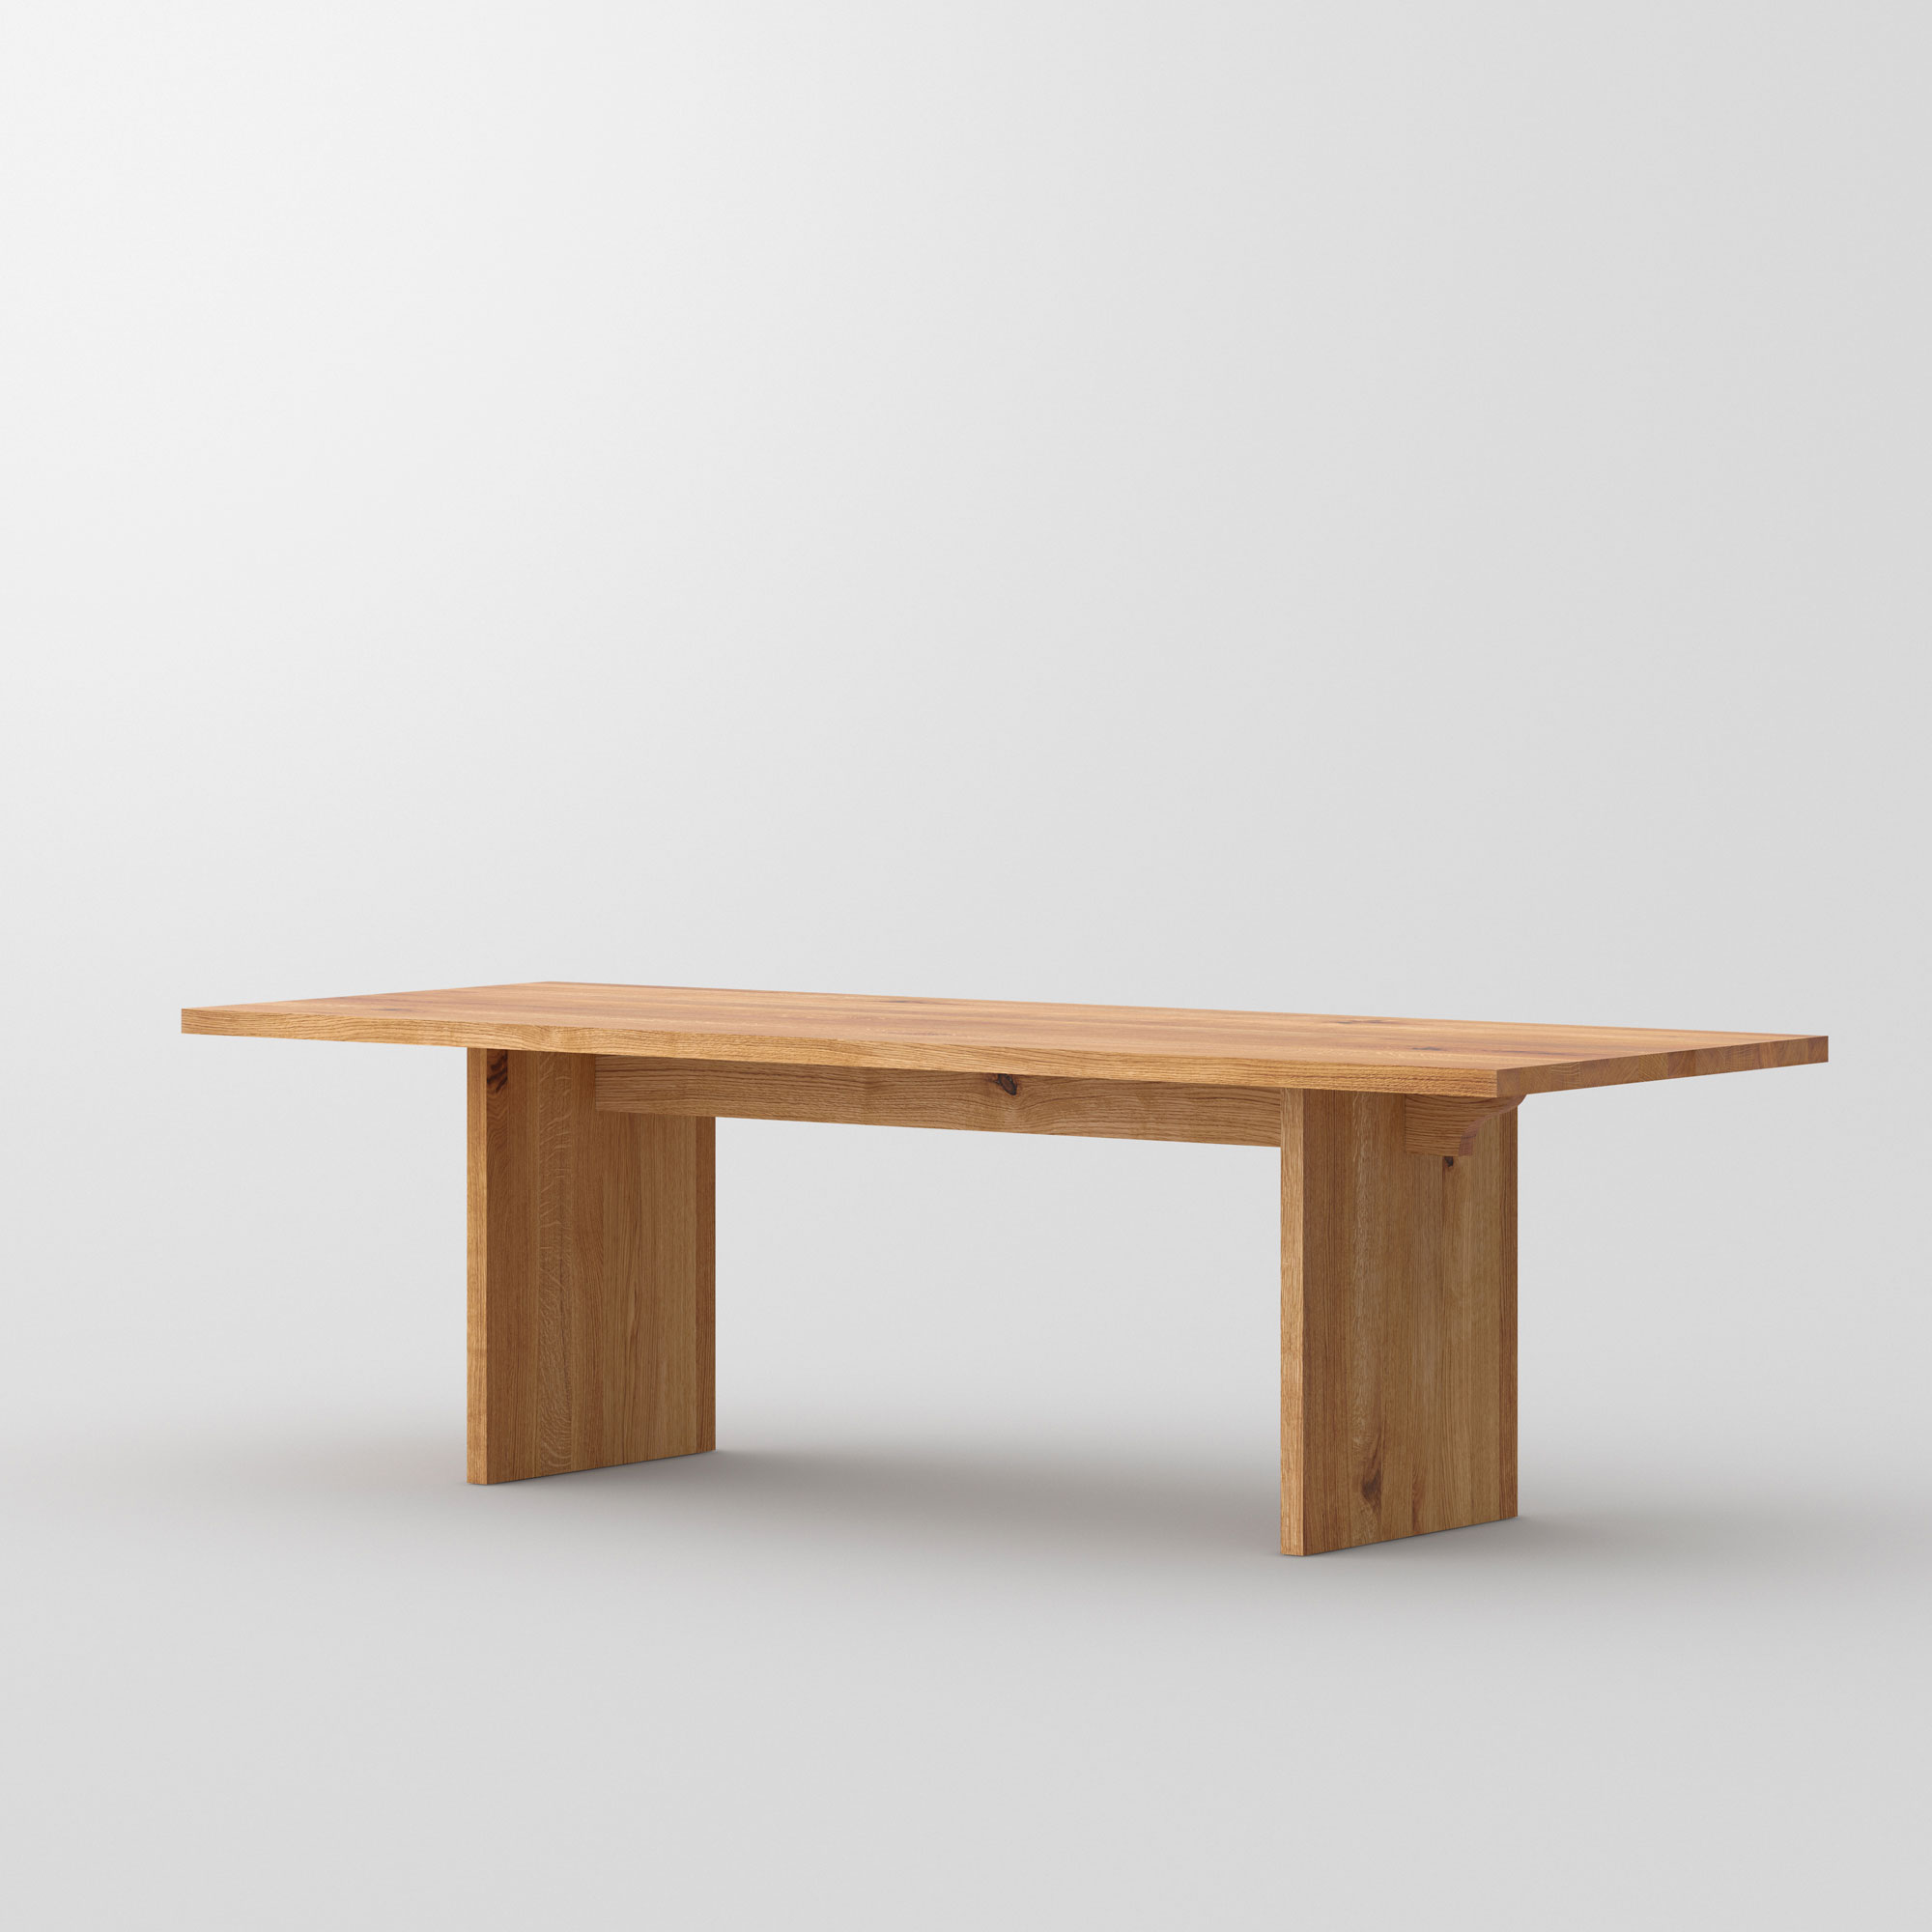 Gable Solid Wood Table SAGA cam1 custom made in solid wood by vitamin design